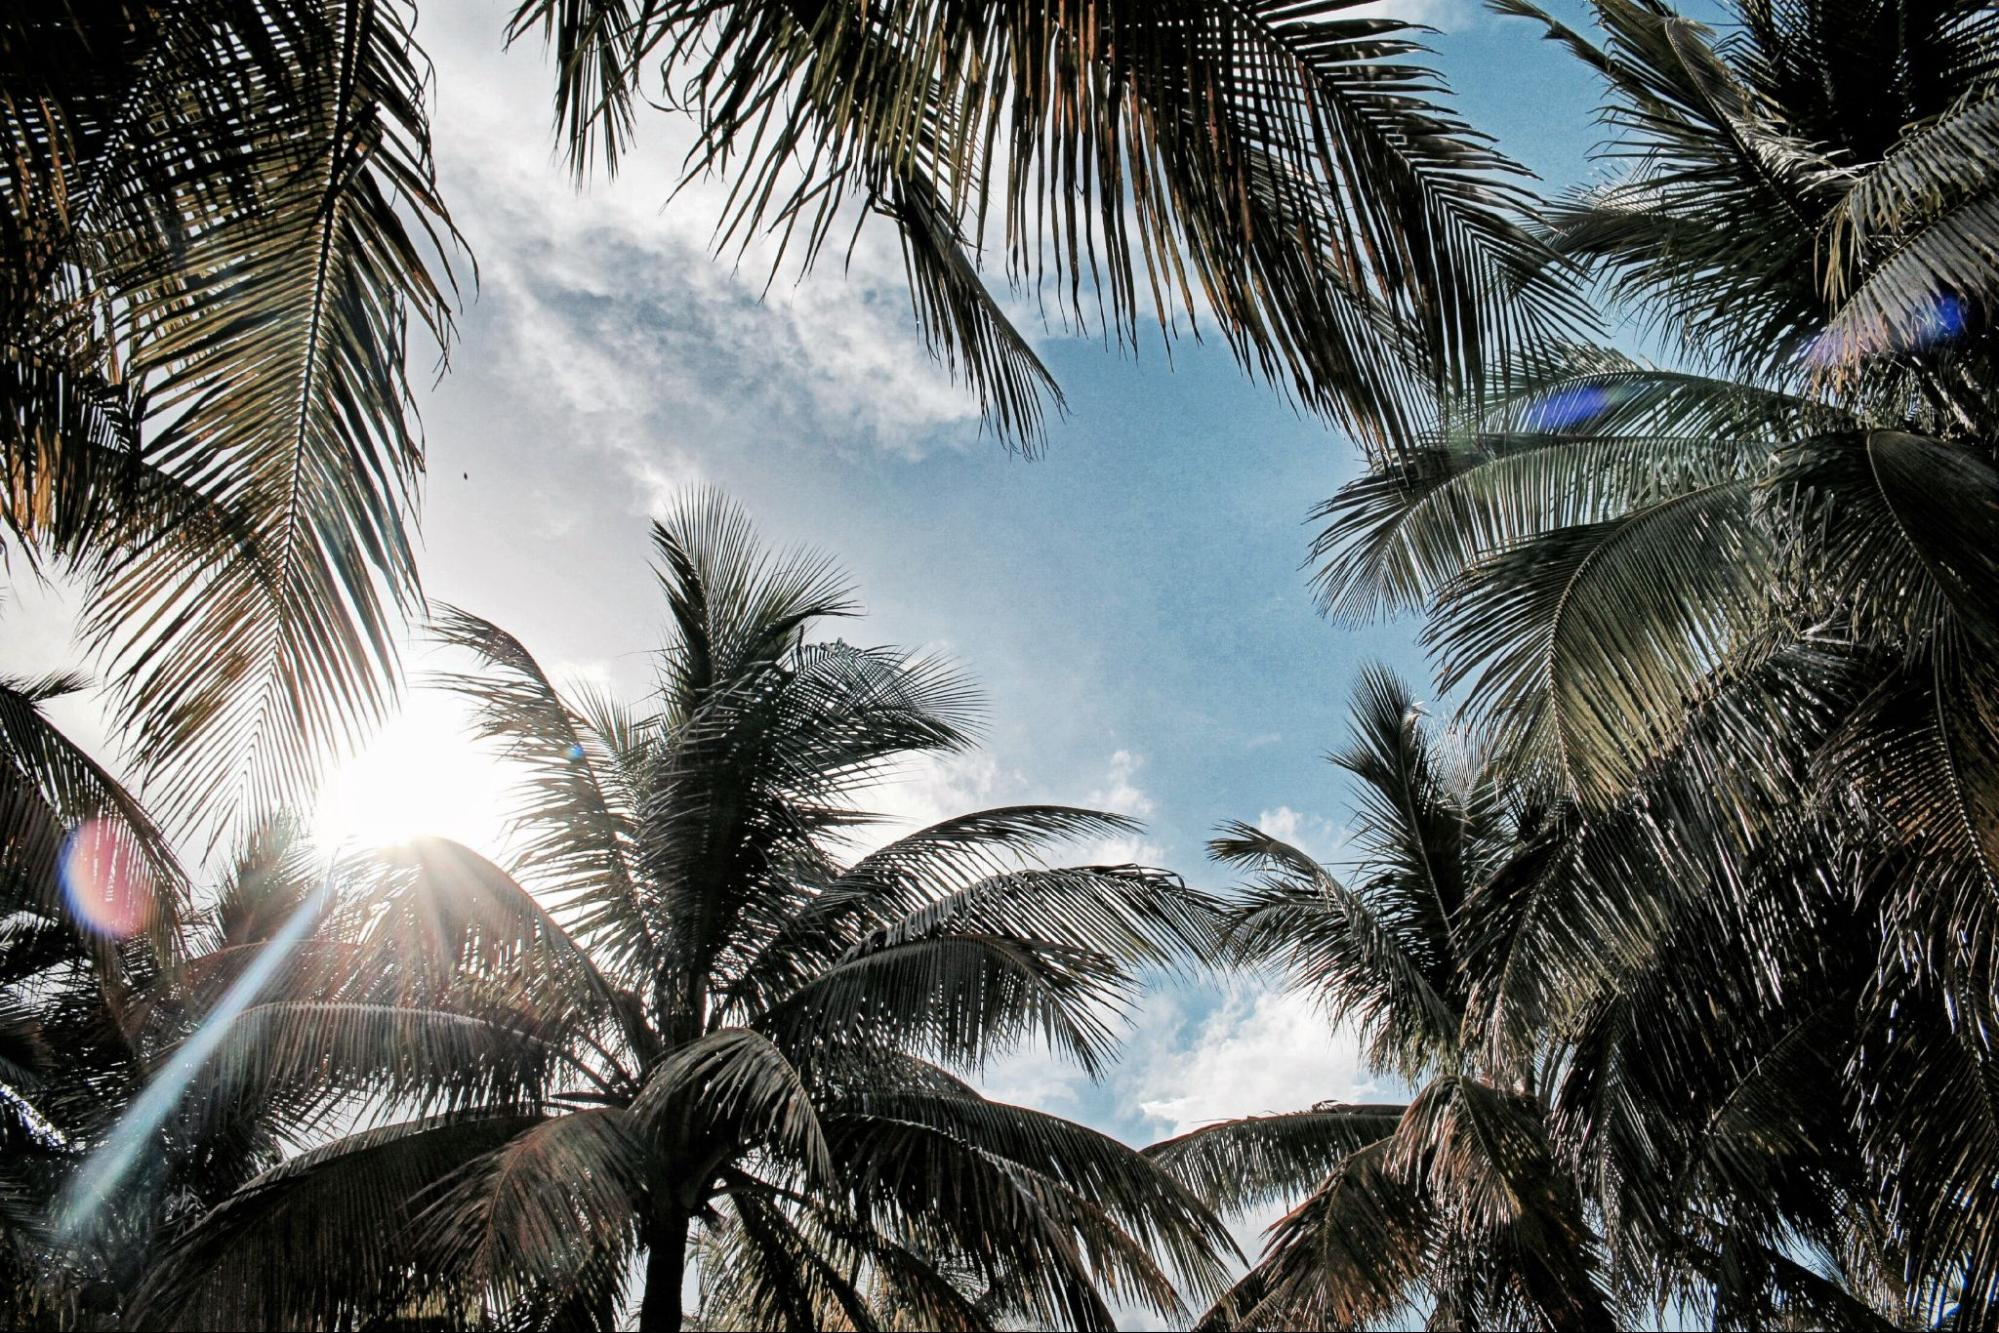 Palm trees in Fort Lauderdale, Florida